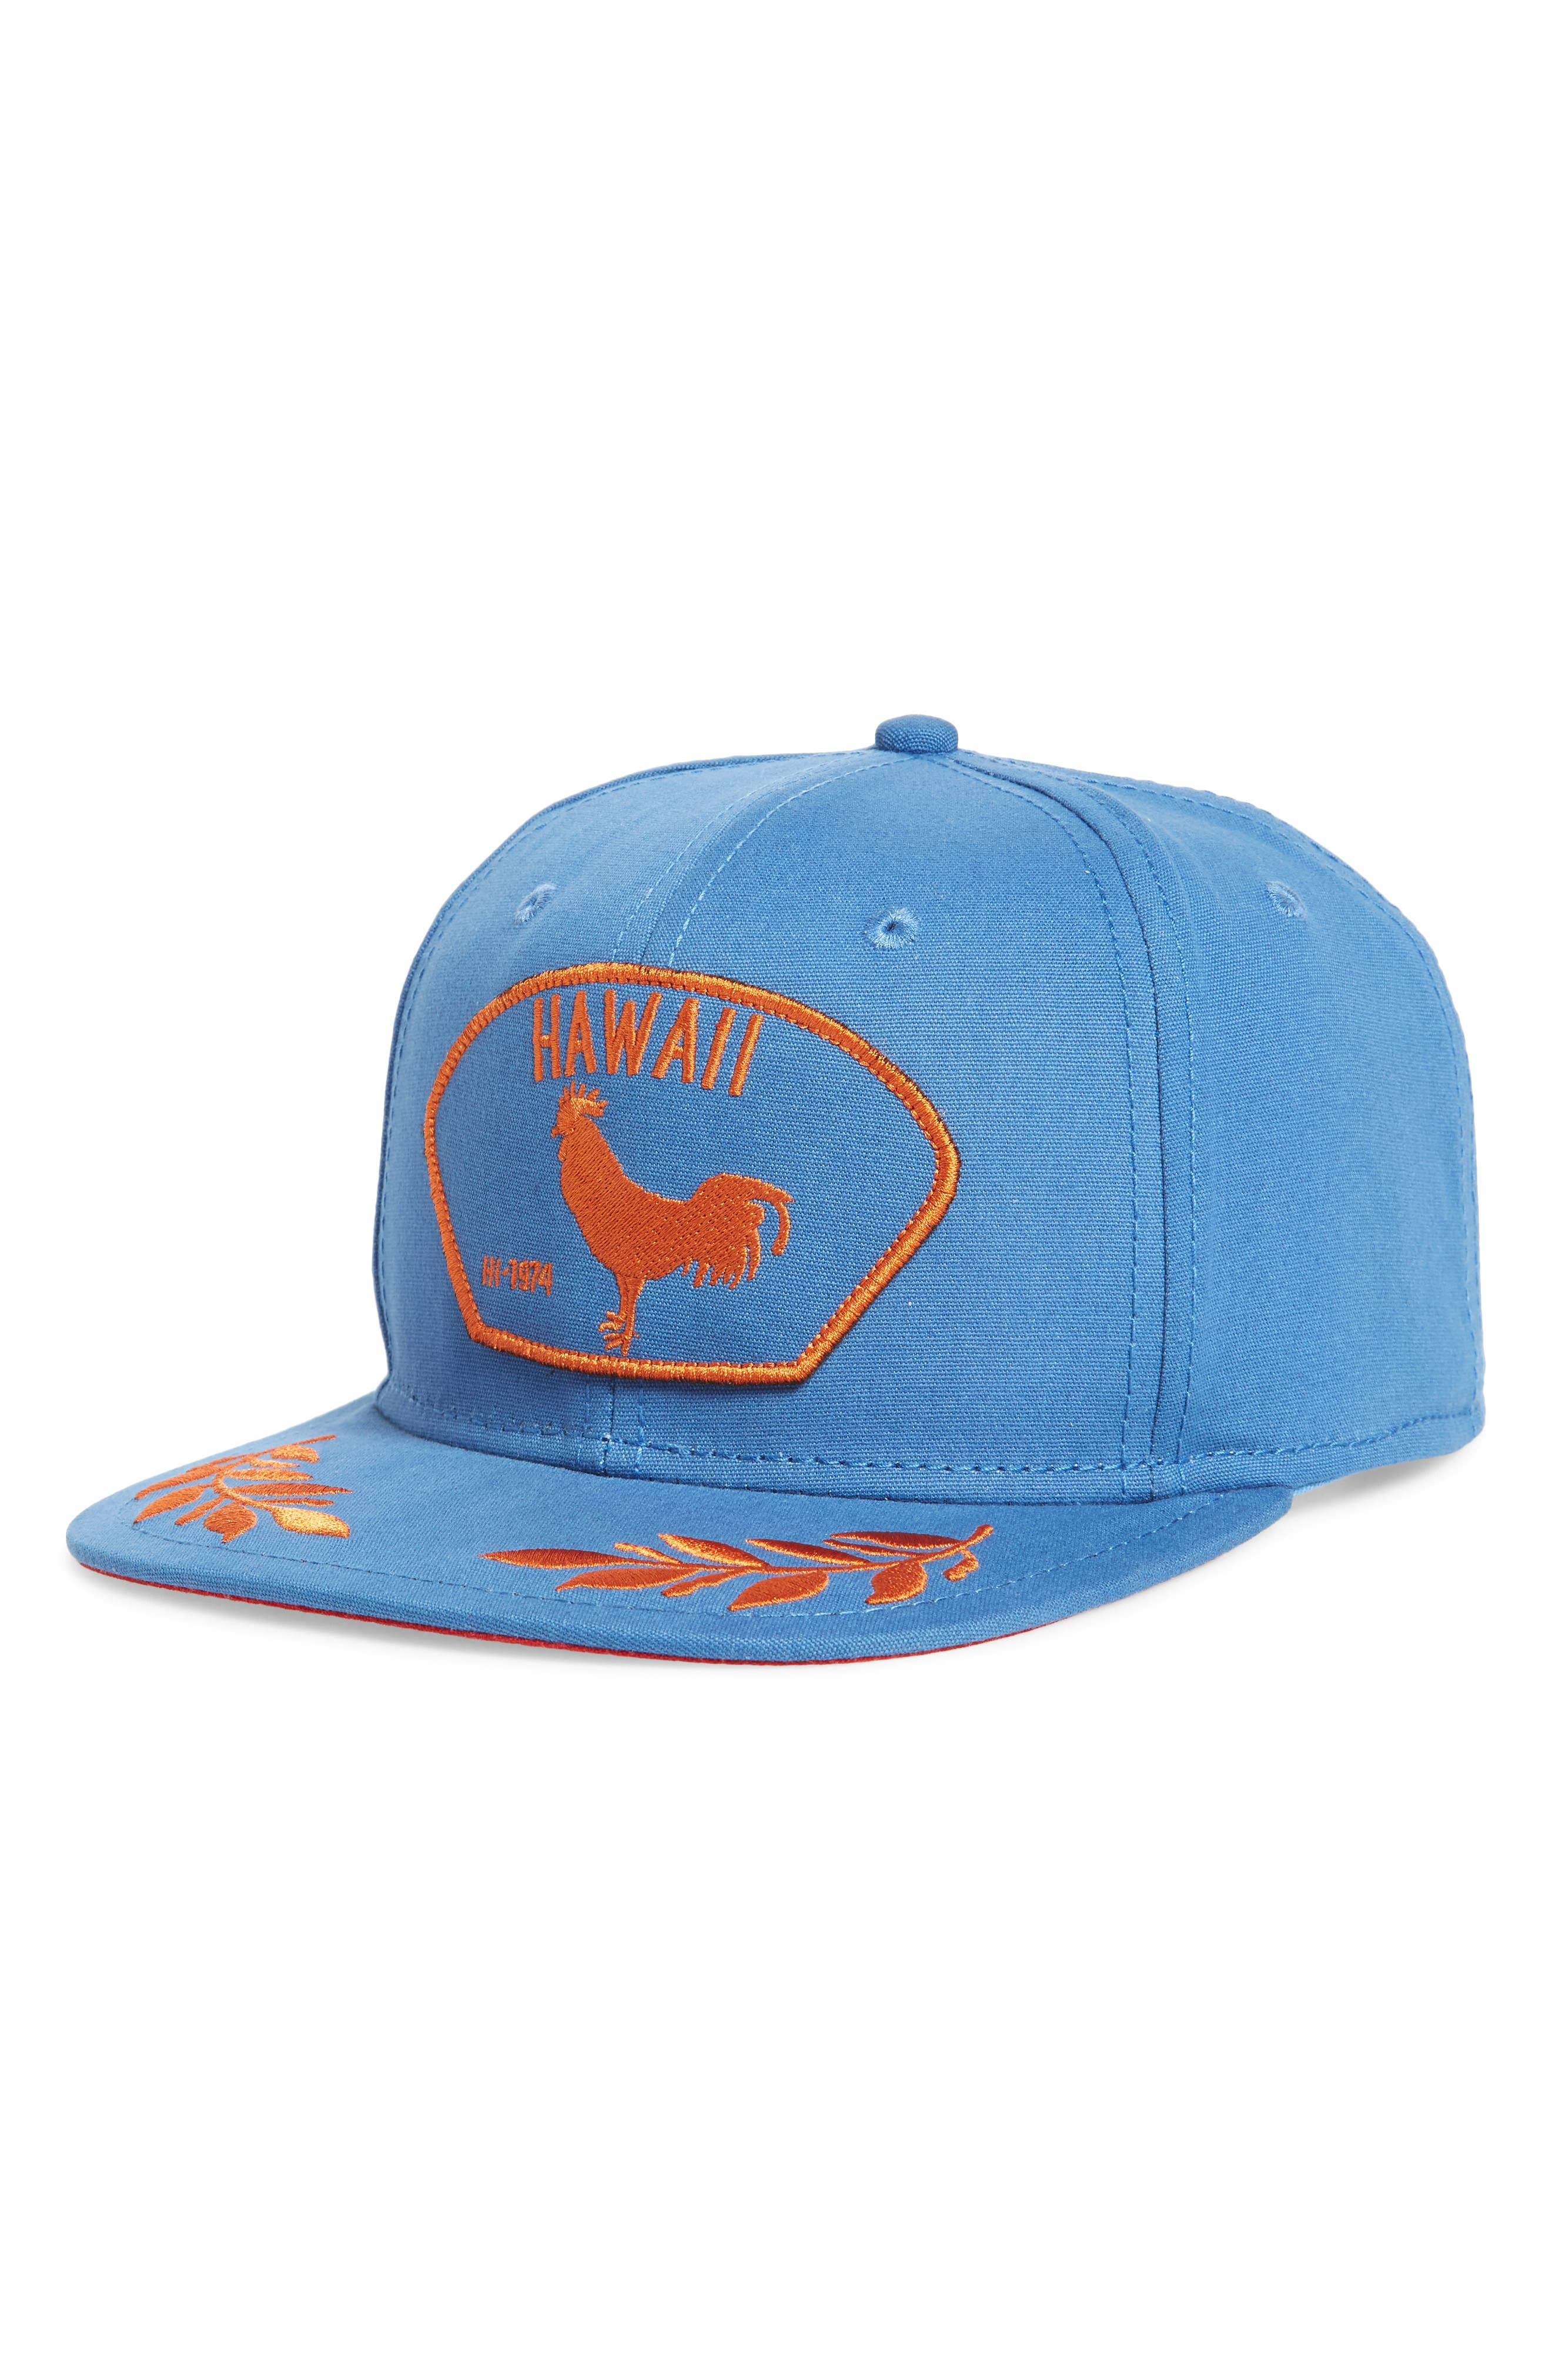 Island Bird Snapback Baseball Cap,                         Main,                         color, Blue